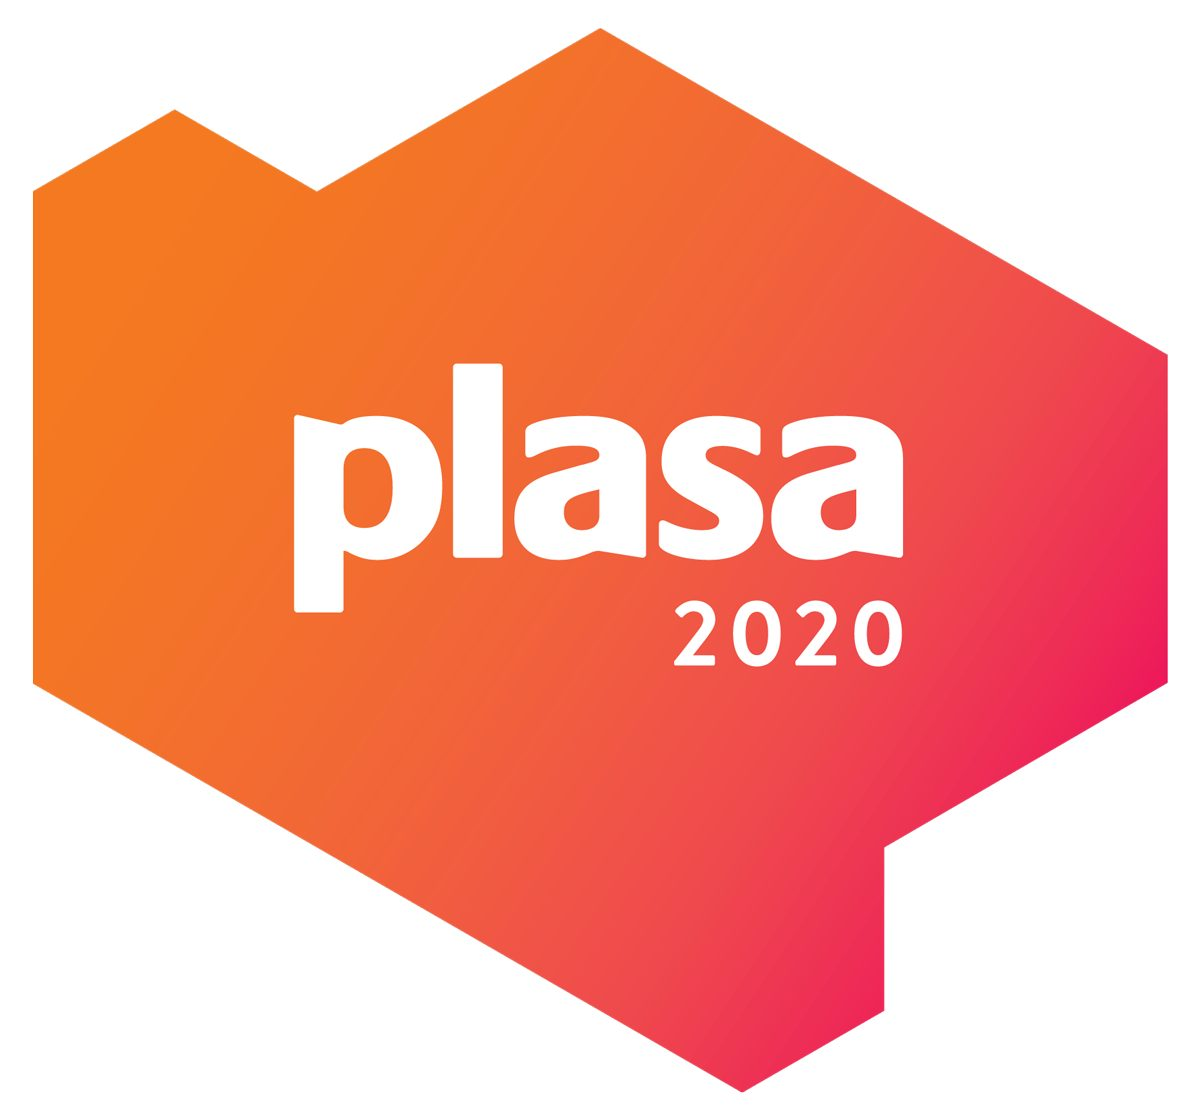 Release Roundup: PLASA Show Postponed to 2021